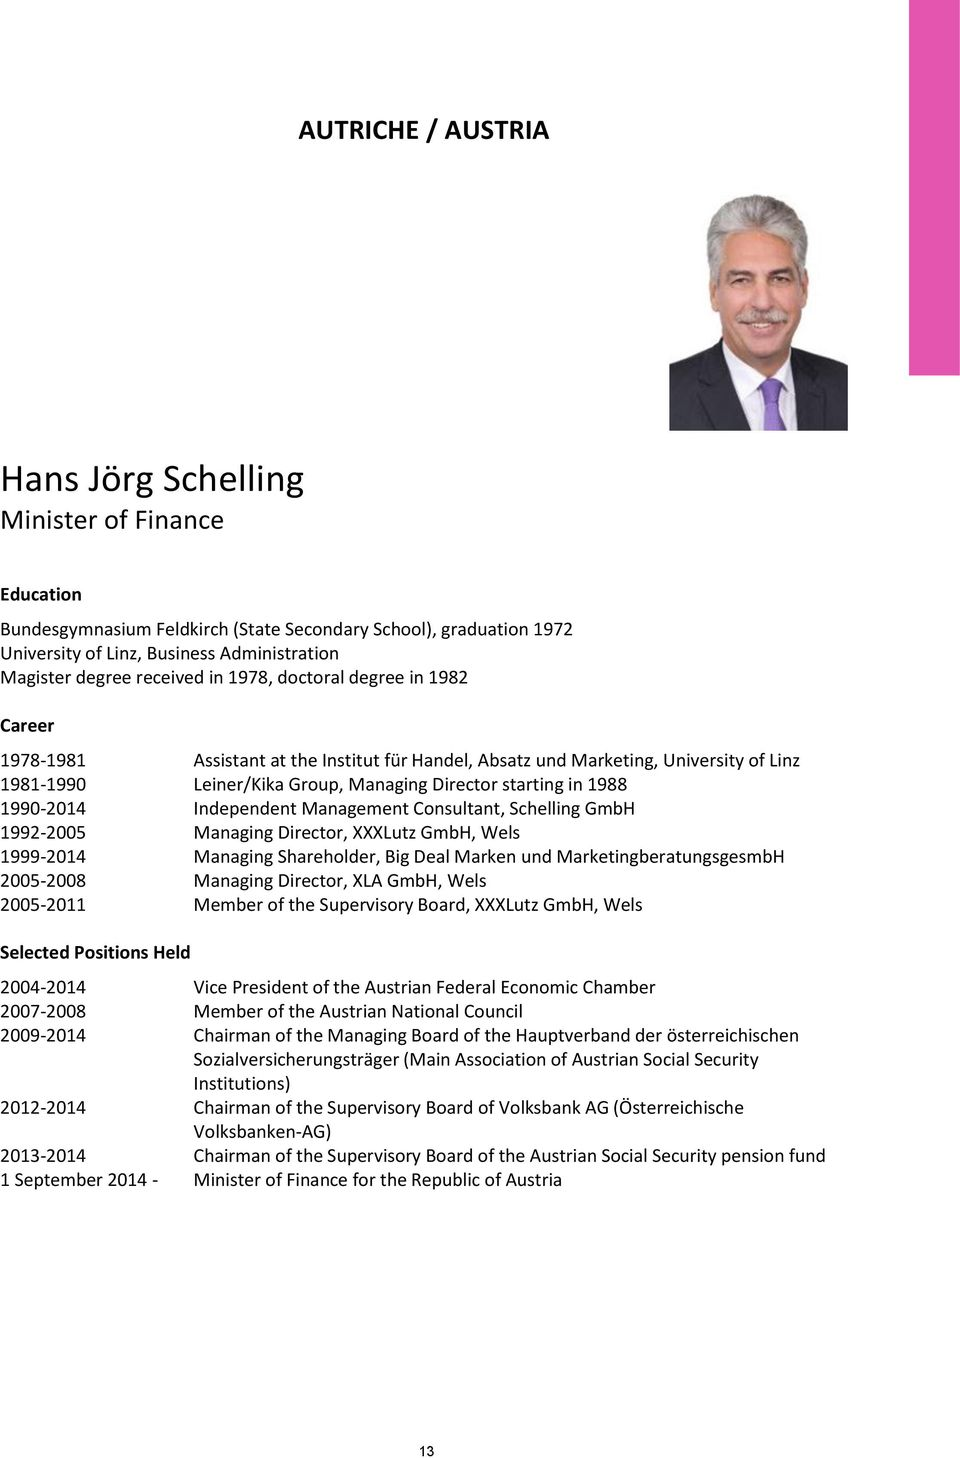 1988 1990-2014 Independent Management Consultant, Schelling GmbH 1992-2005 Managing Director, XXXLutz GmbH, Wels 1999-2014 Managing Shareholder, Big Deal Marken und MarketingberatungsgesmbH 2005-2008